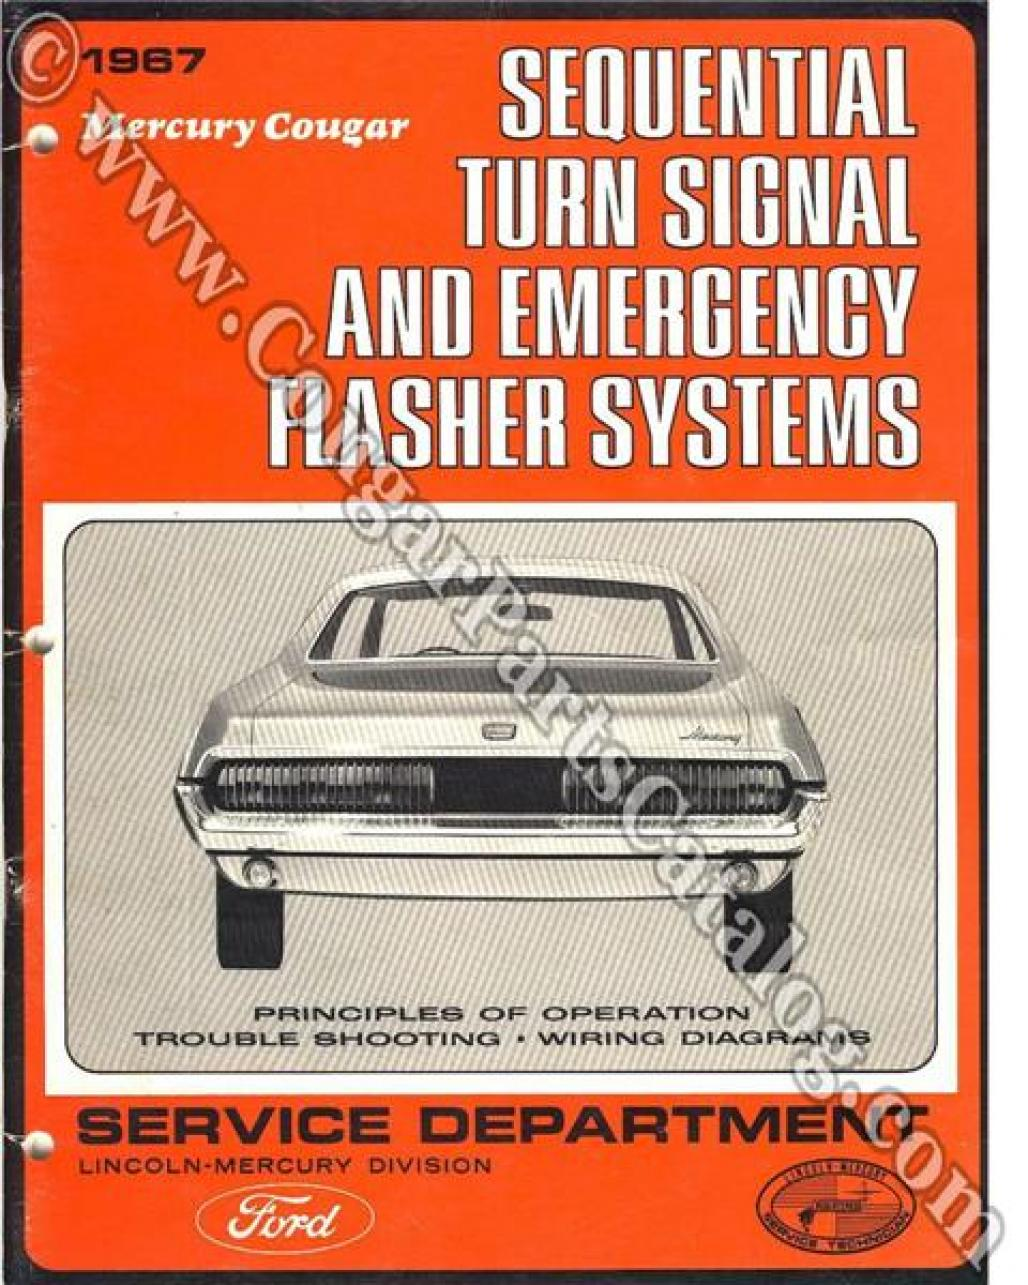 manual - sequential turn signal service of operation - free download ~ 1967  mercury cougar ( 1967 mercury cougar ) at west coast classic cougar :: the